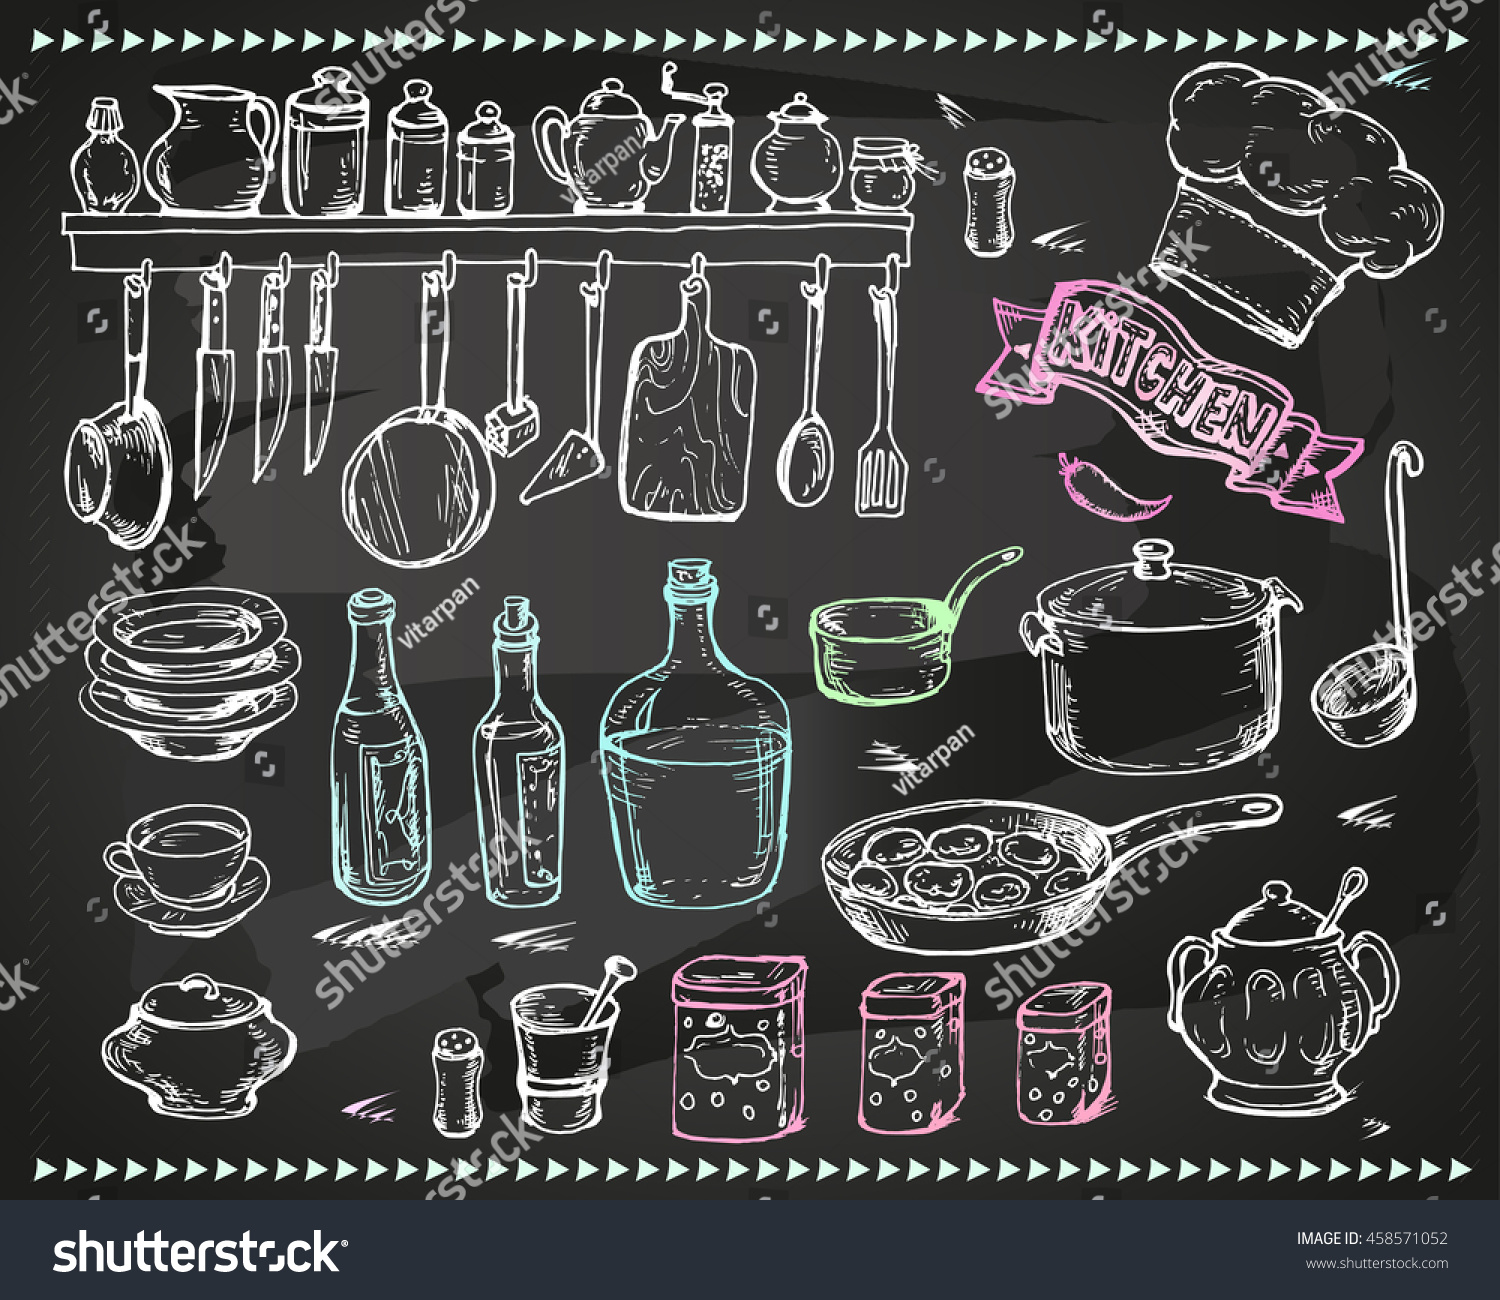 Vector graphics artistic set menu design stock vector for Artistic cuisine menu